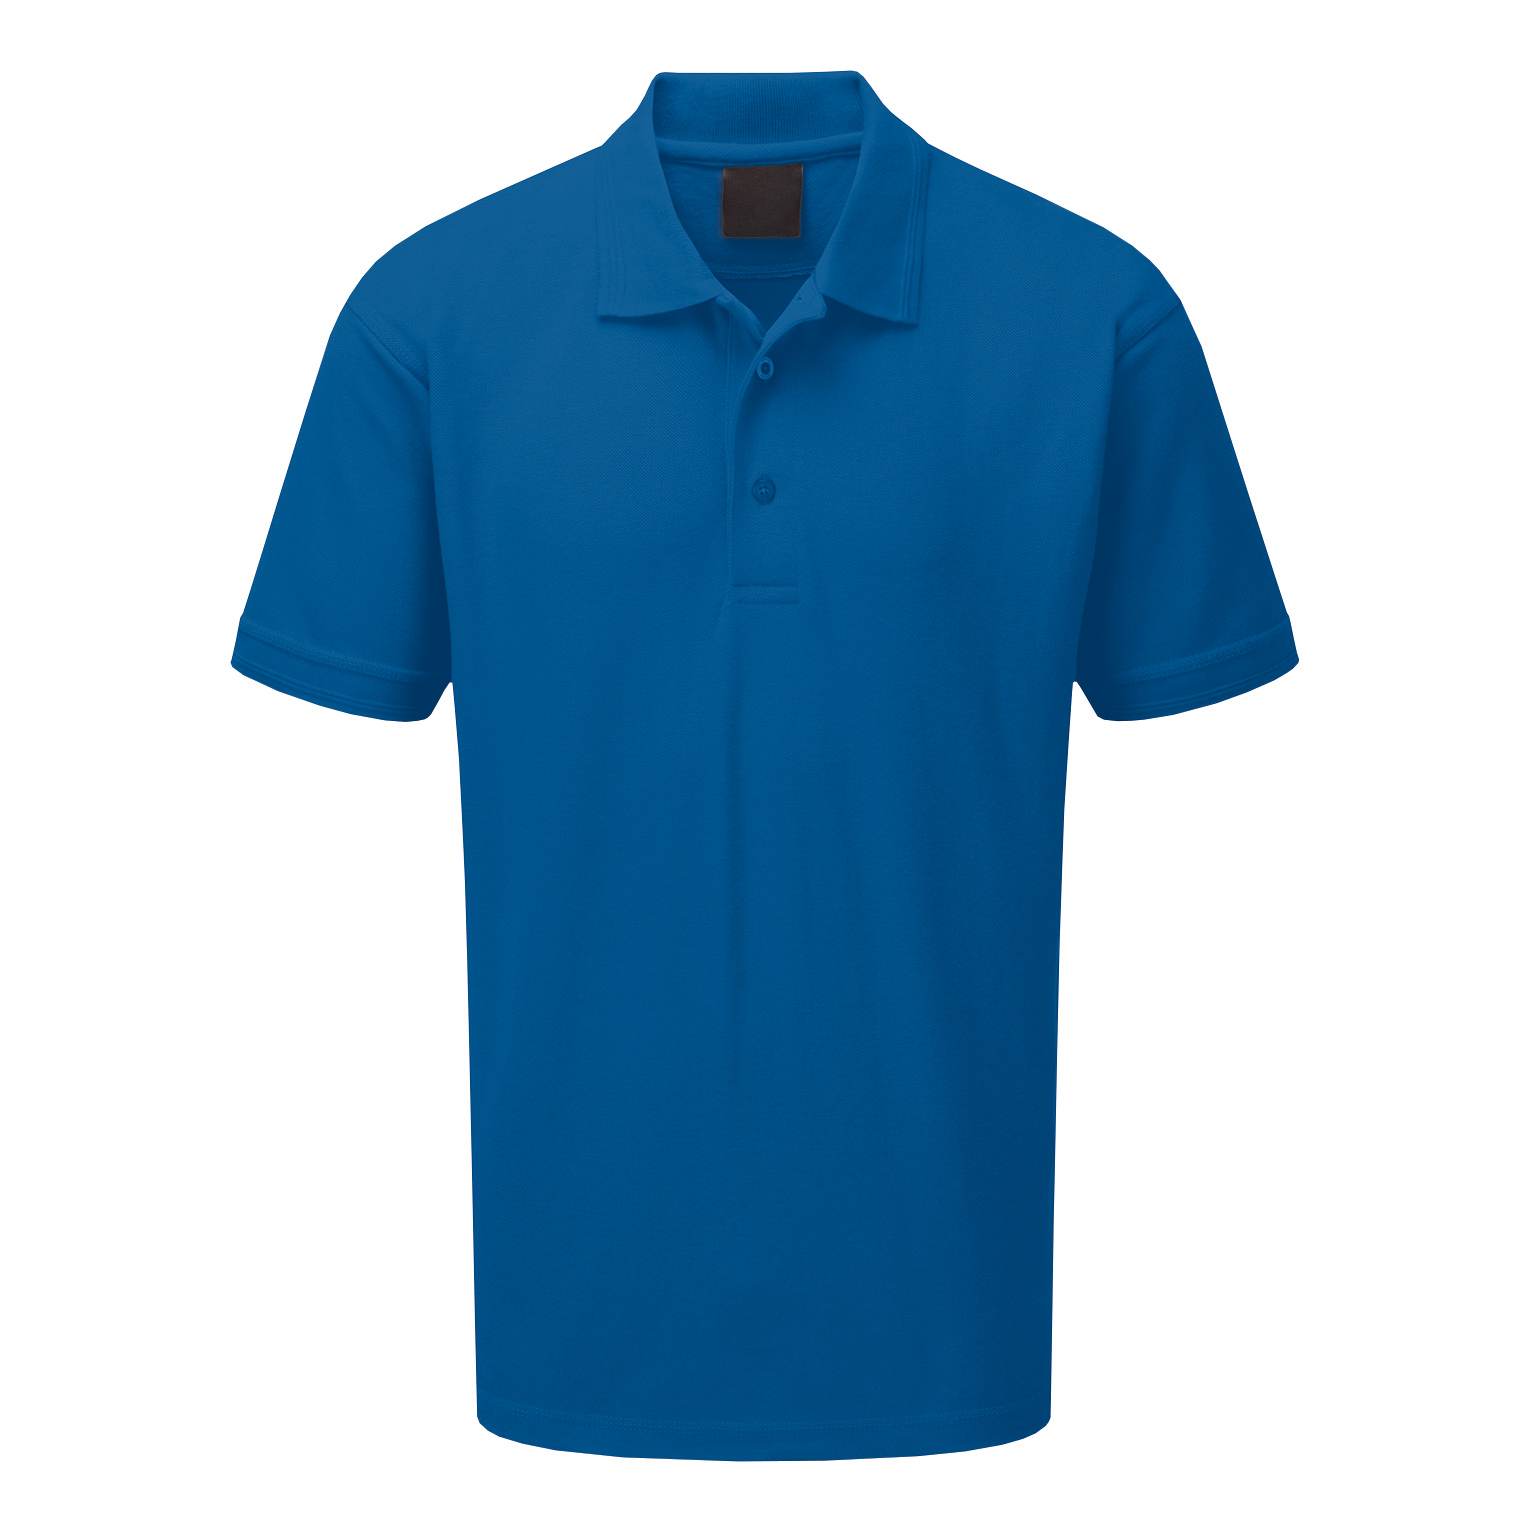 Premium Polo Triple Stitched 220gsm Size Small Royal Blue